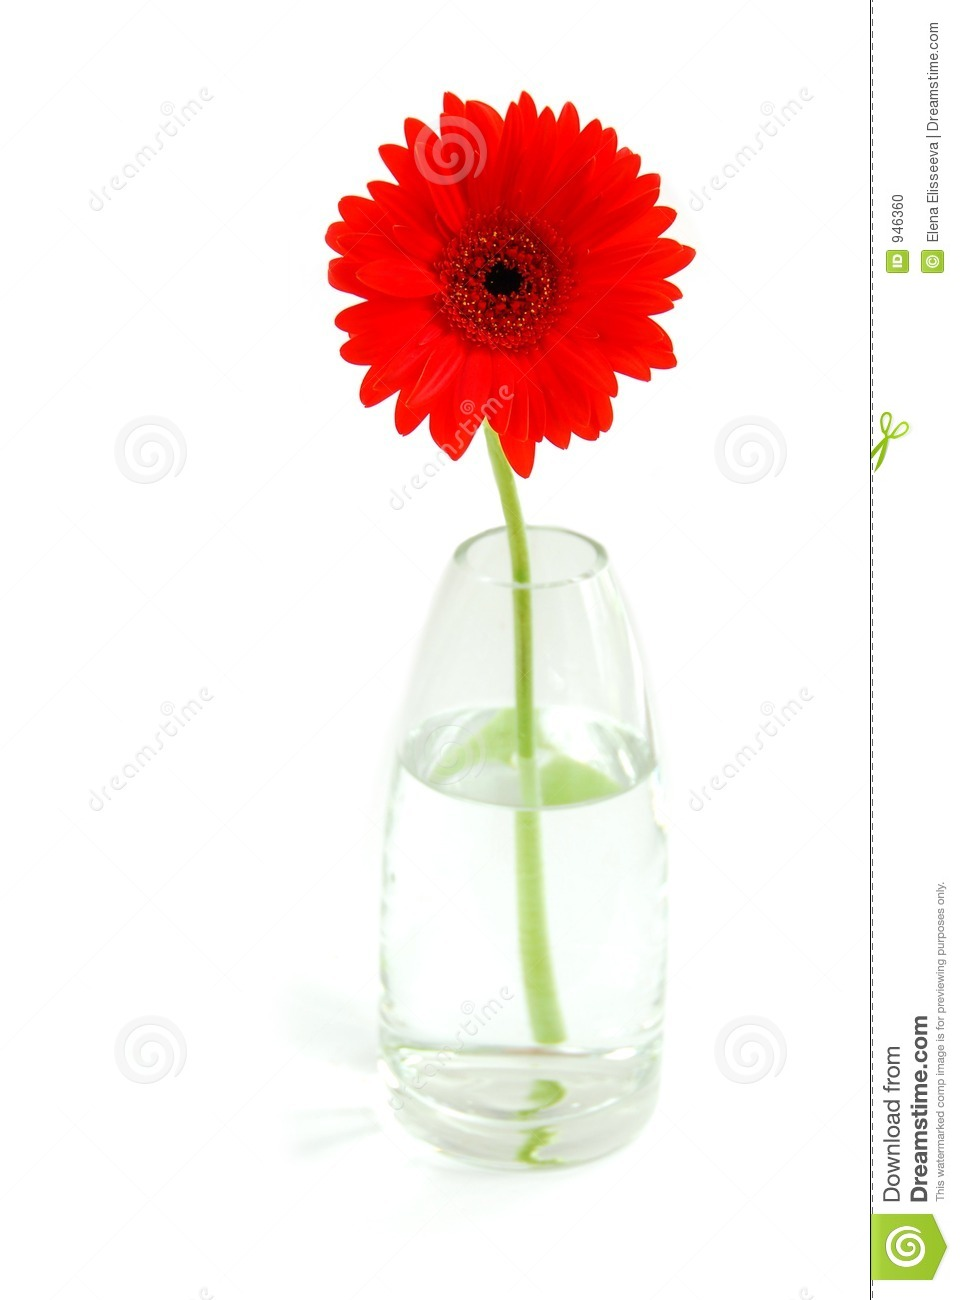 Red gerbera in a vase stock photo. Image of flower, round ...